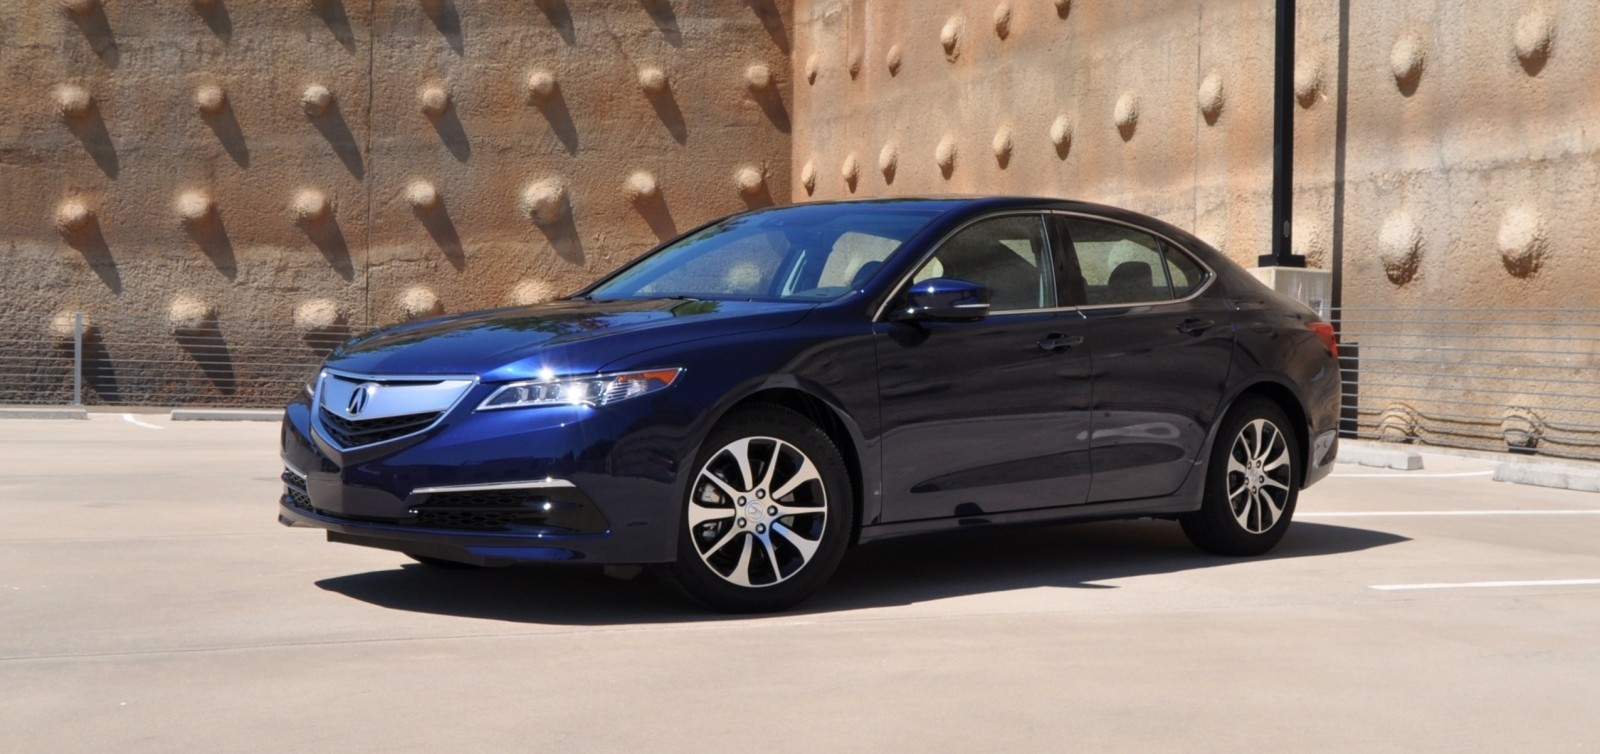 Lastest Home  Road Test Review  2015 Acura TLX 24L Is Seriously Good Fun